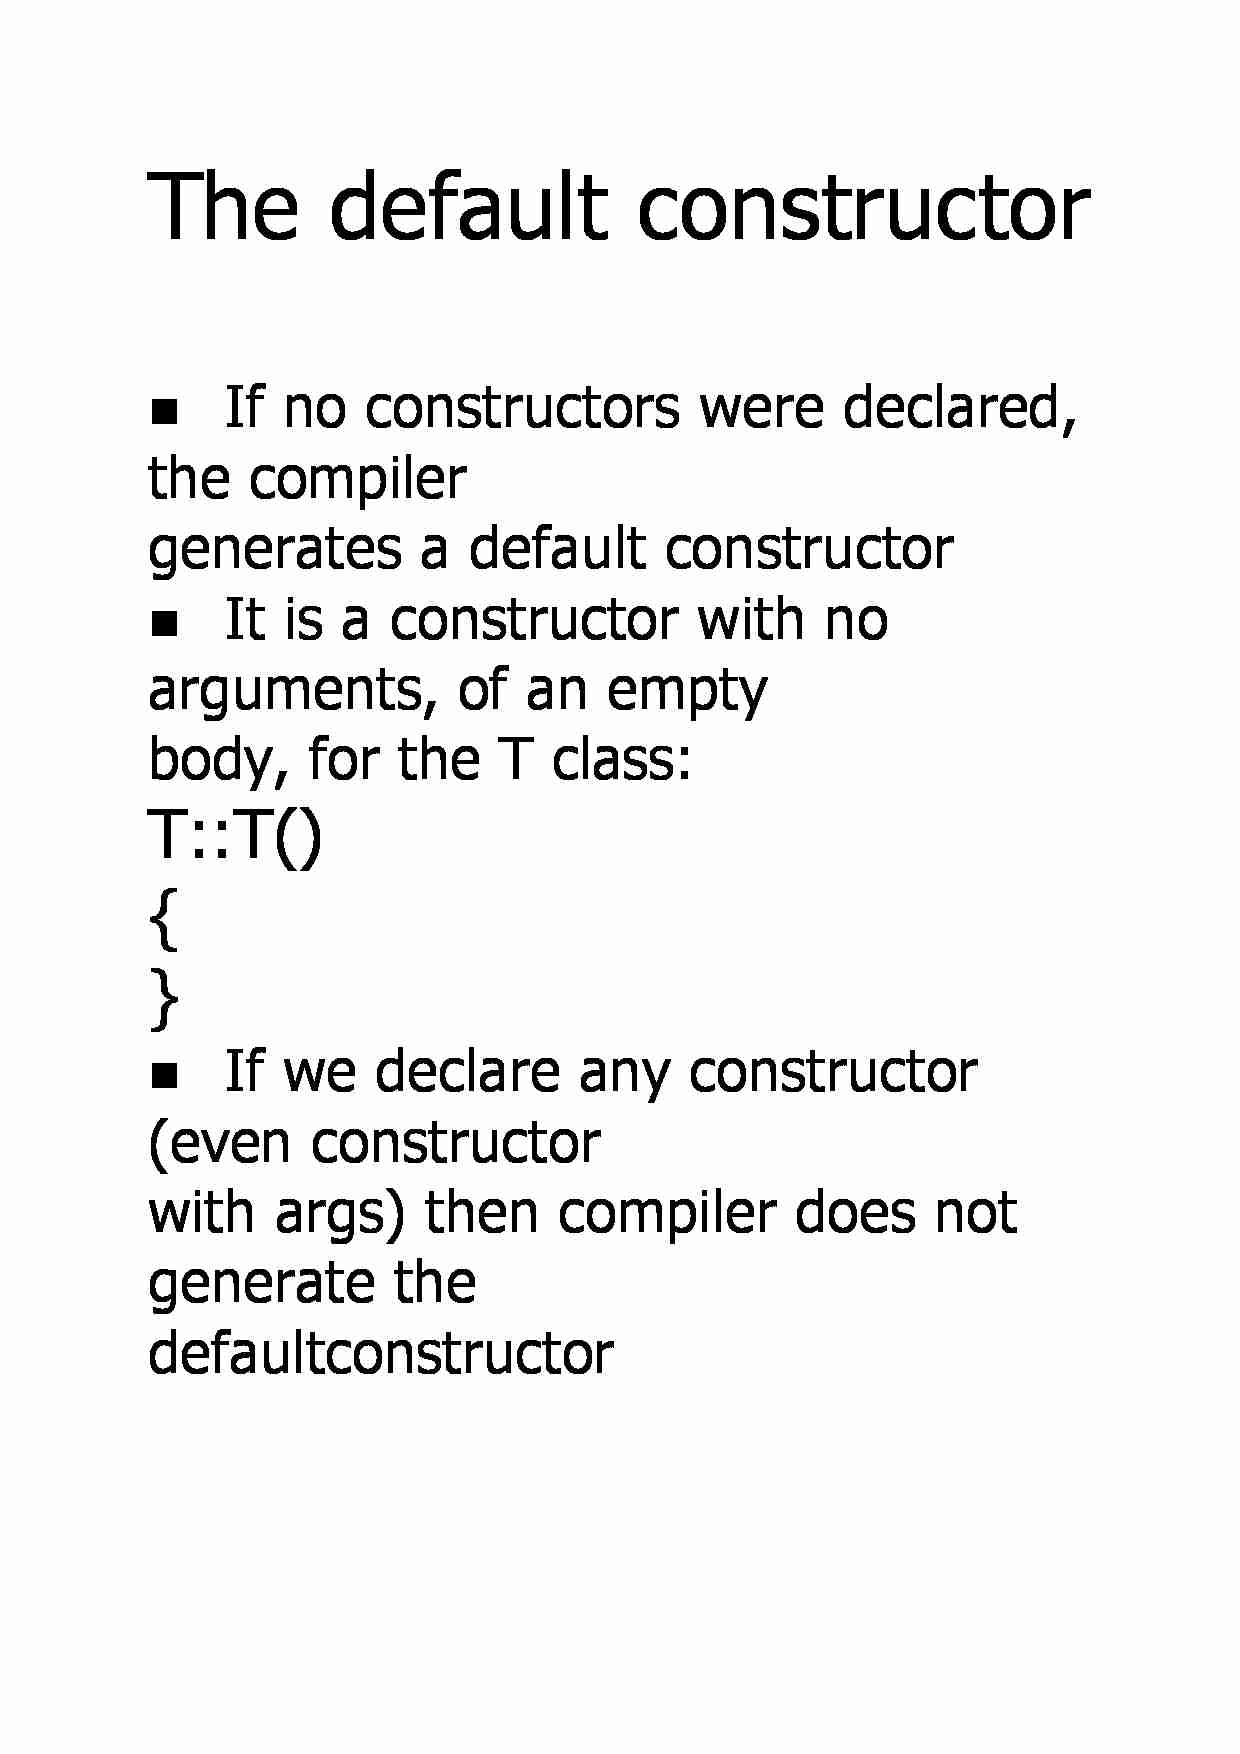 The default constructor - strona 1